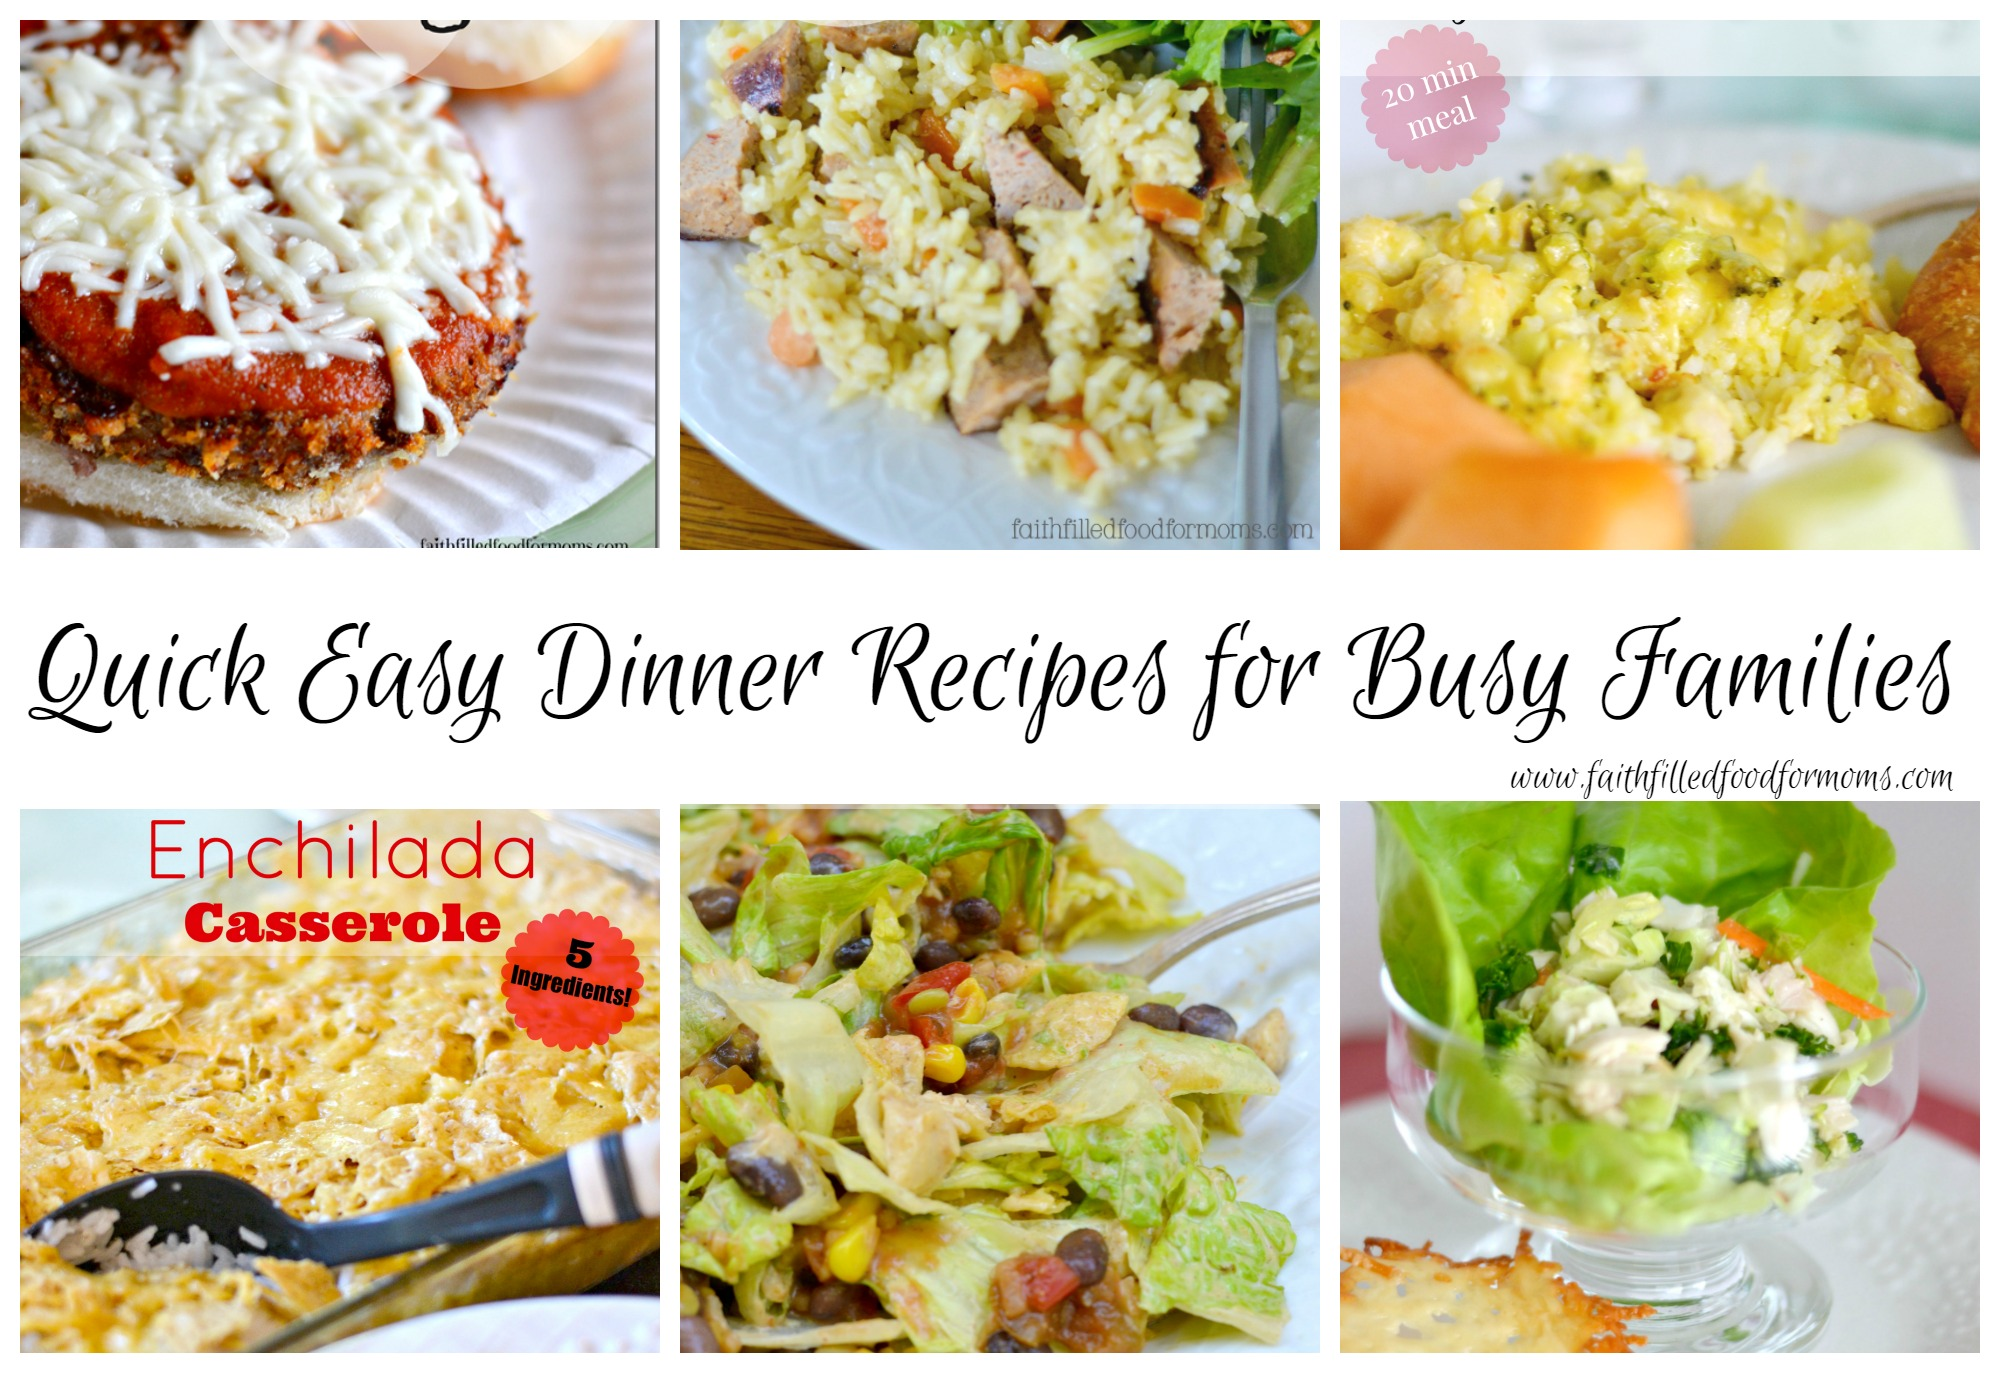 Quick easy dinner recipes for 2 food crafts website for Quick and easy dinner recipes for two